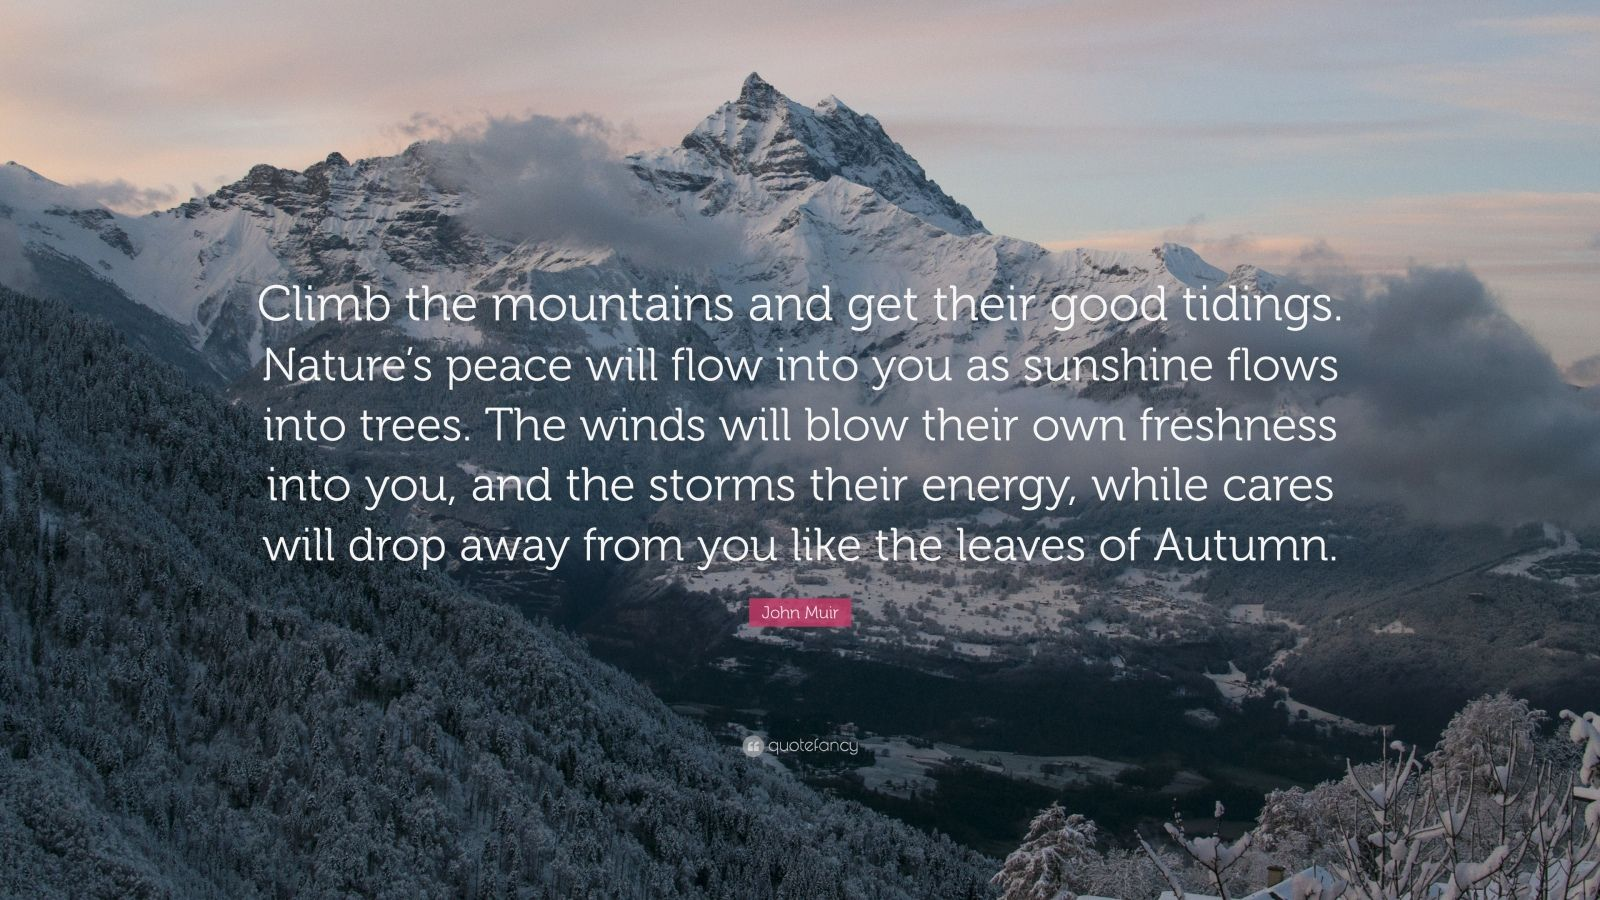 "John Muir Quote: ""Climb the mountains and get their good tidings. Nature's peace will flow into you as sunshine flows into trees. The winds will blow their own freshness into you, and the storms their energy, while cares will drop away from you like the leaves of Autumn."""